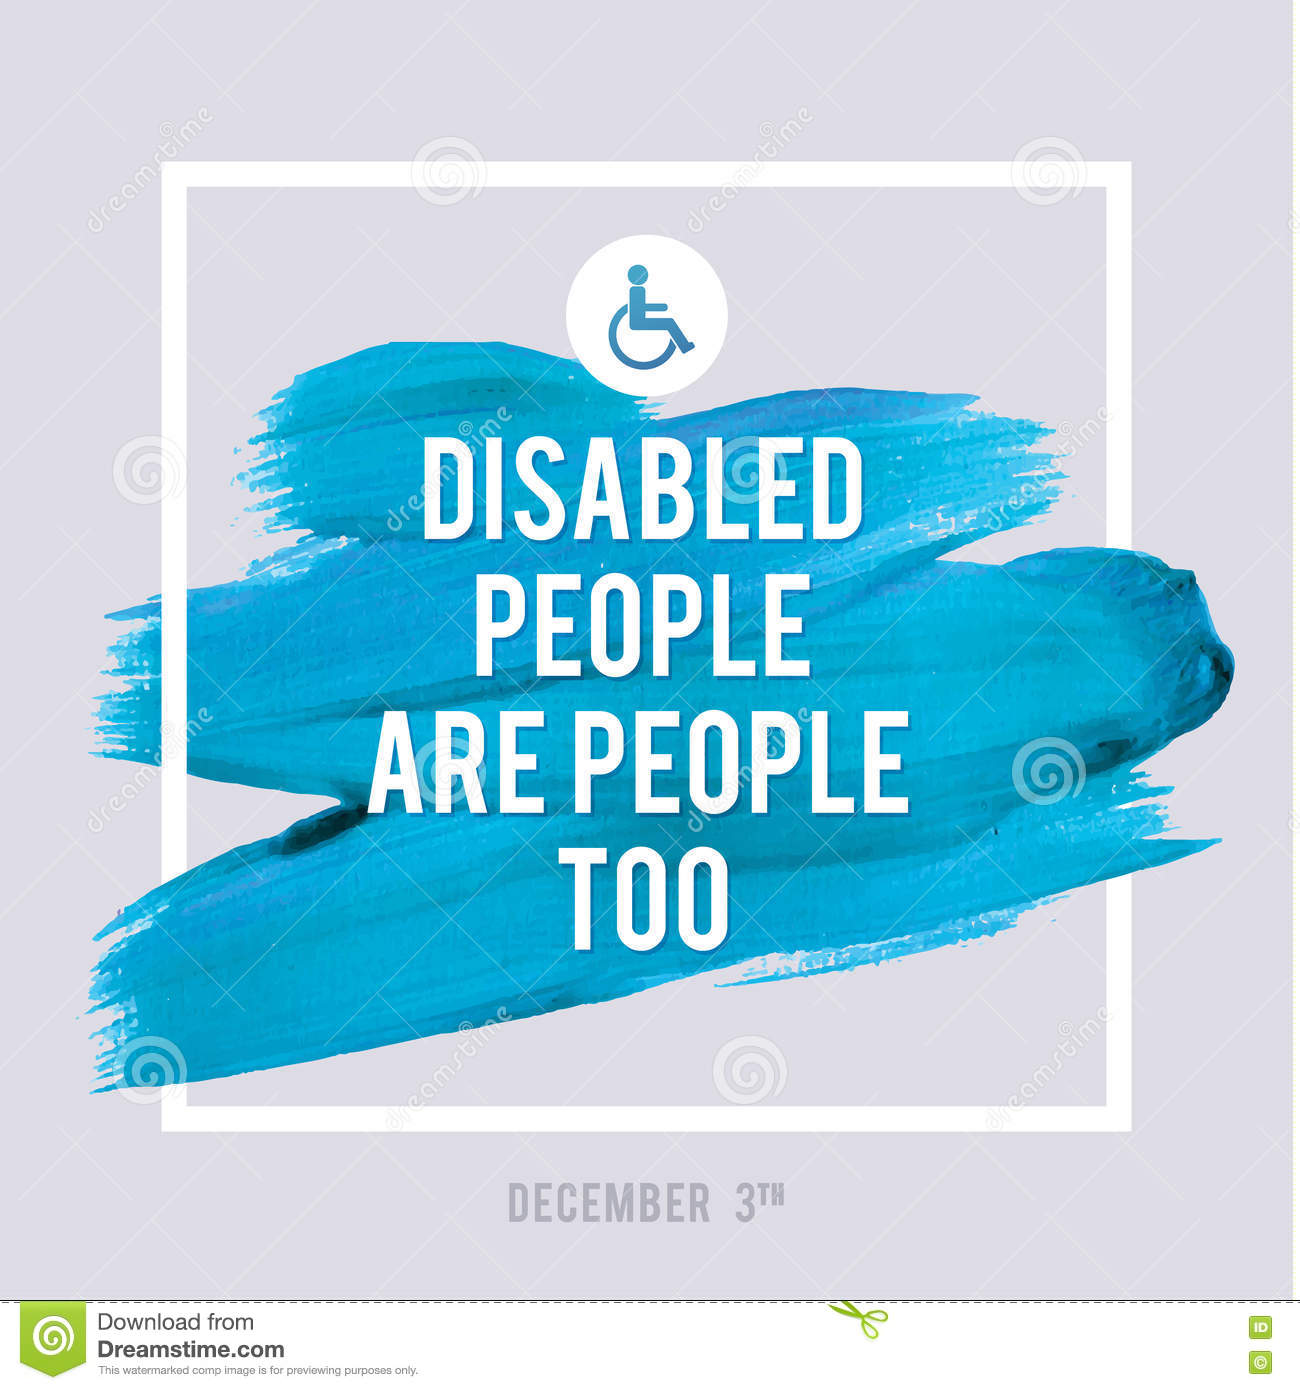 Poster design medical - World Disability Day Typography Watercolor Brush Stroke Design Vector Illustration Grunge Effect Important Poster